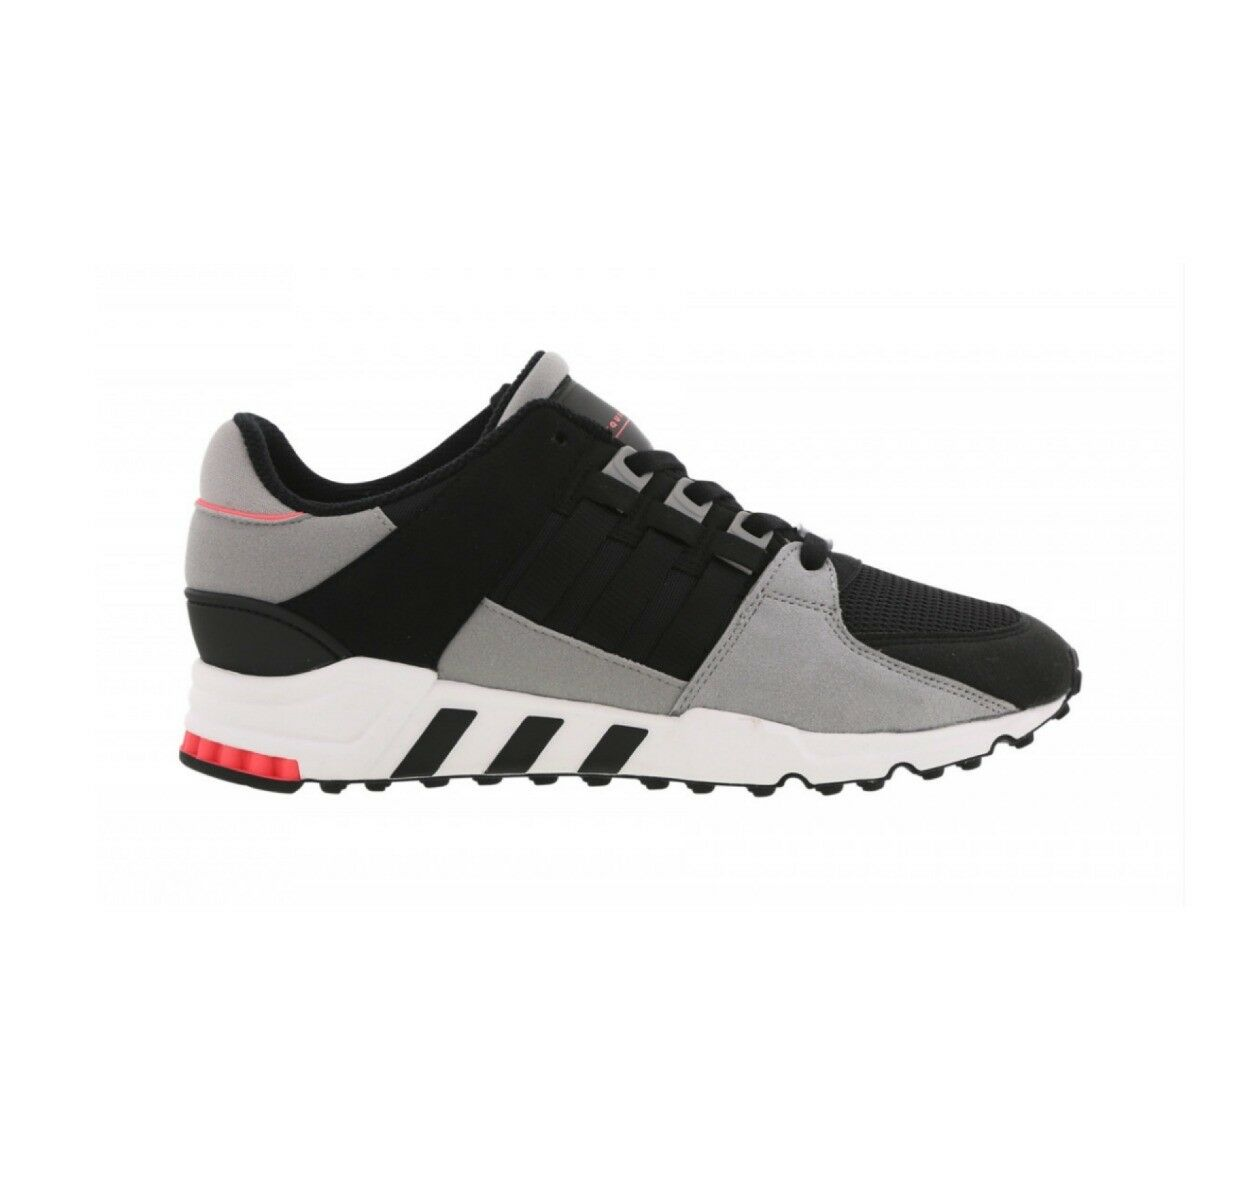 Adidas EQT Support RF Mens Running Trainer Trainer Trainer shoes UK Size 6.5 11.5 New shoes Run 785290